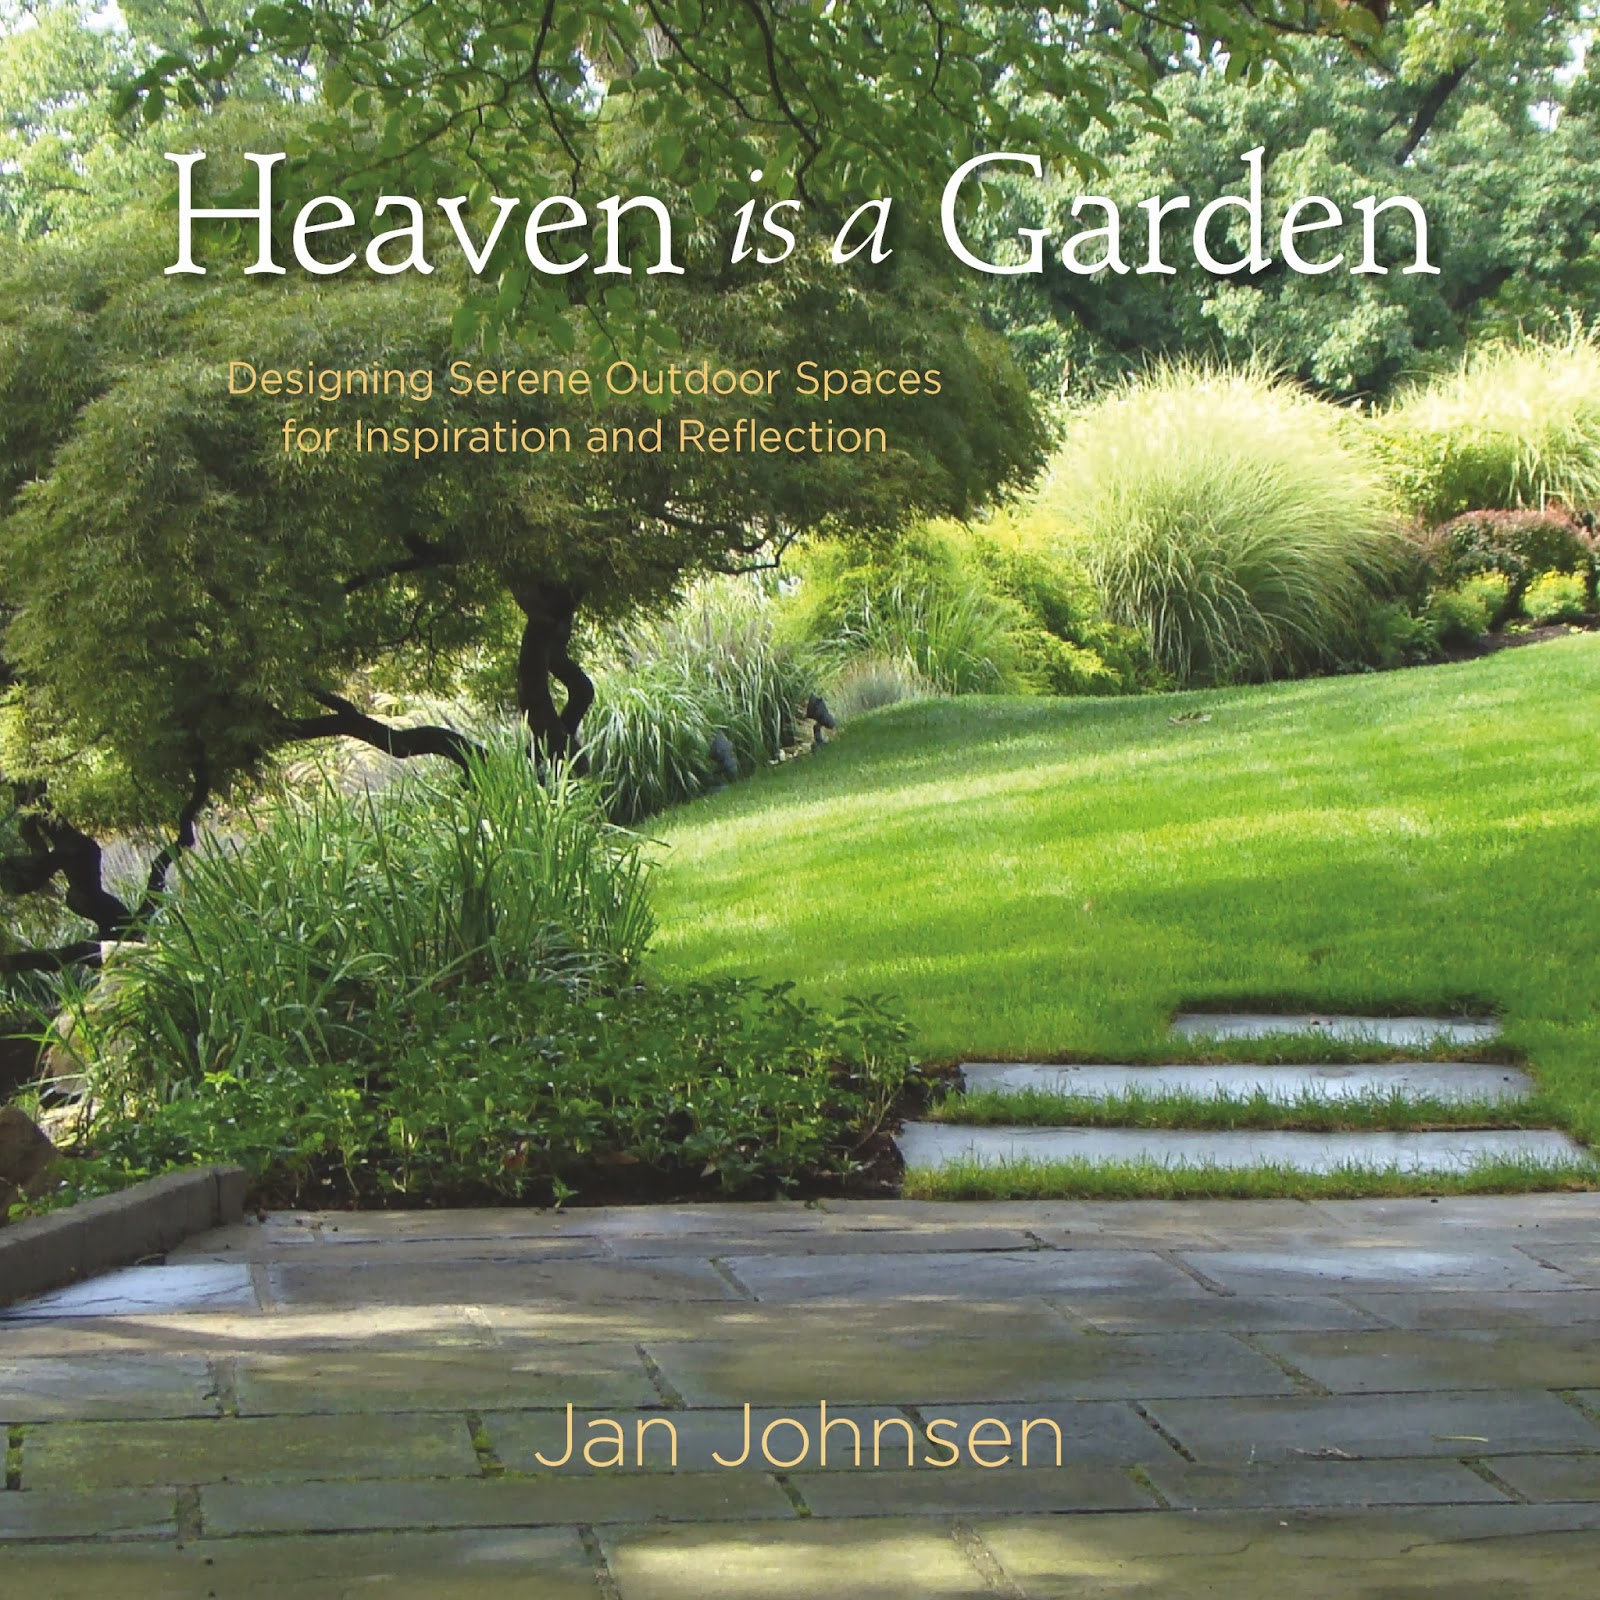 39 heaven is a garden designing serene outdoor spaces 39 for Landscape design books